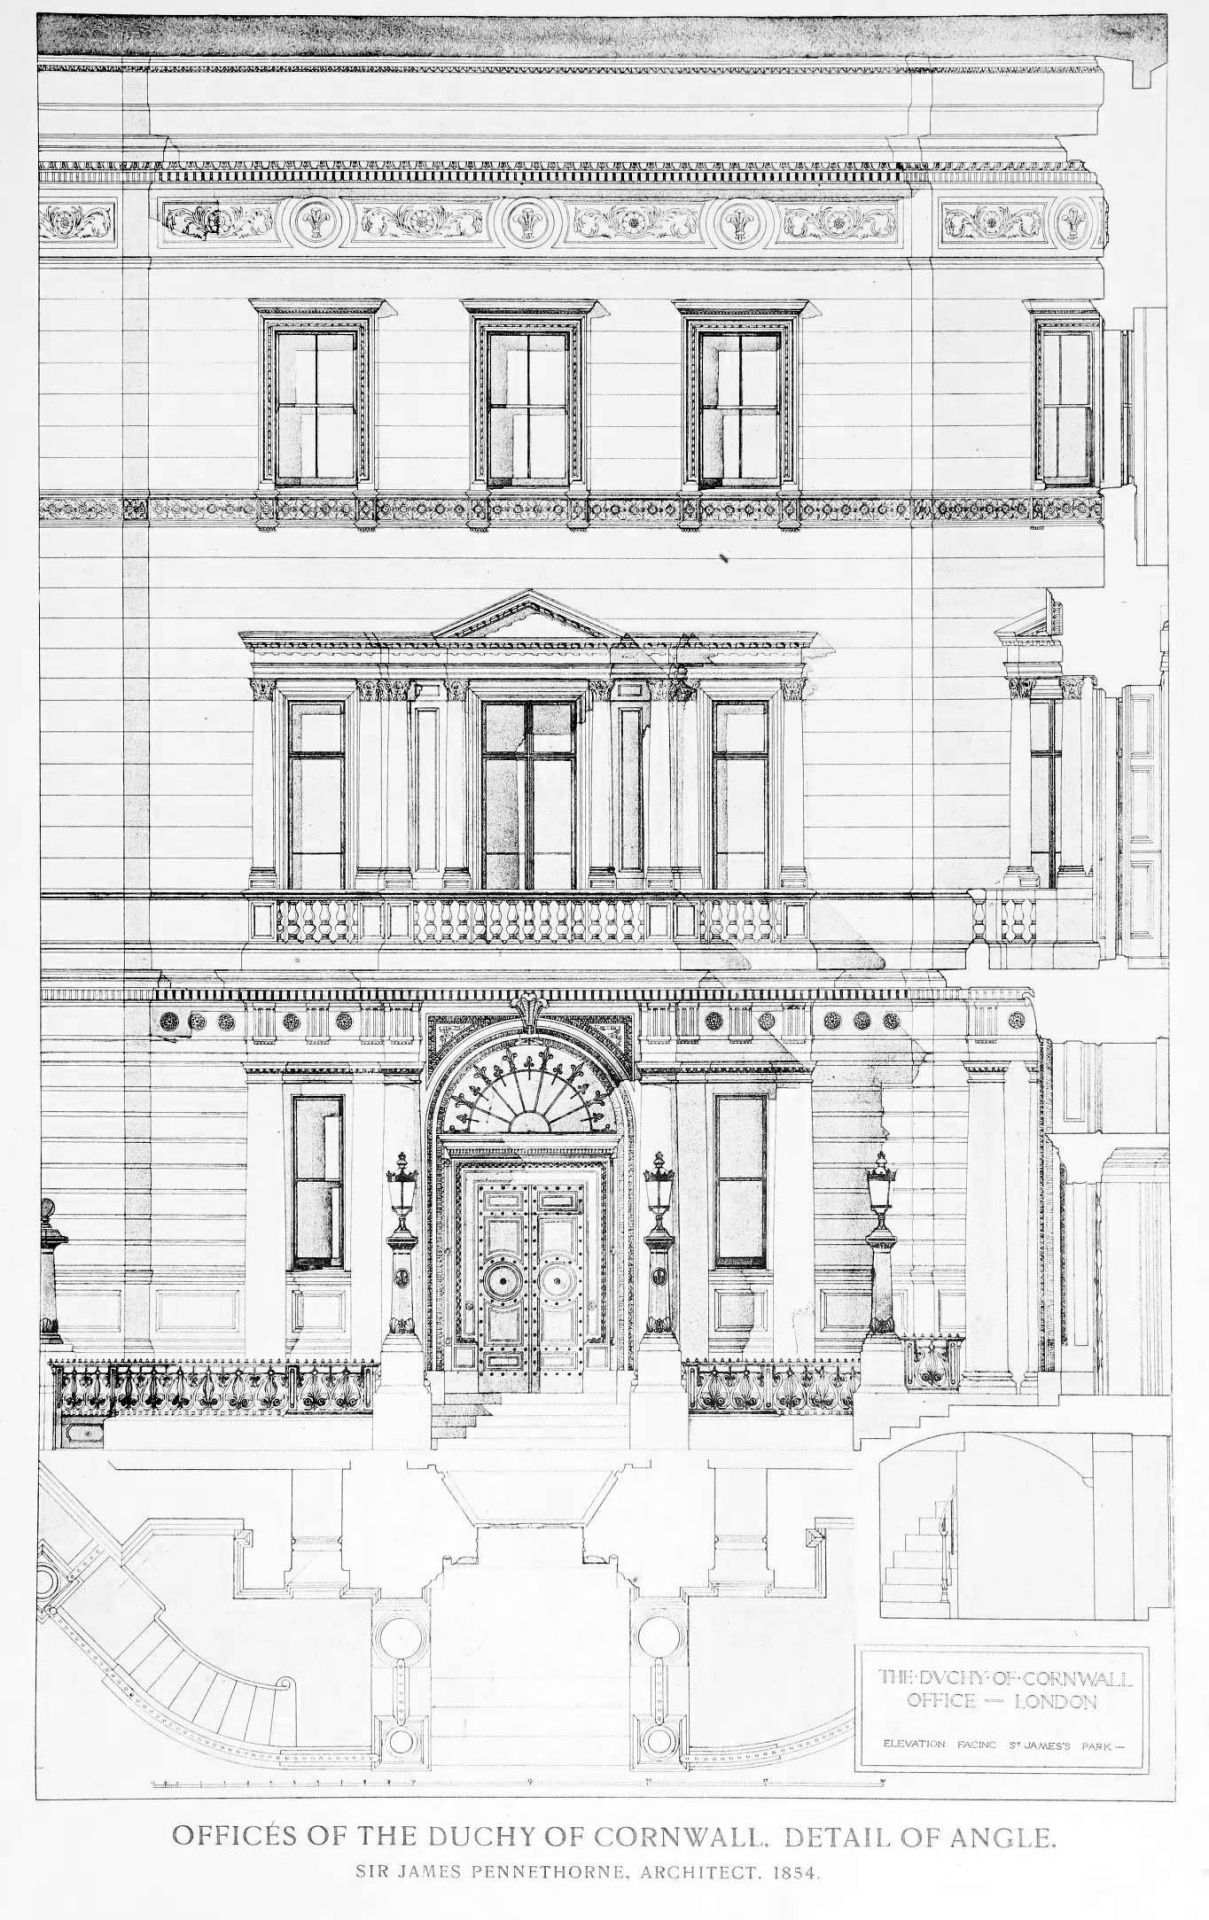 Dallas texas french chateau home photograph 4540 - Elevation Of The Offices Of The Duchy Of Cornwall London